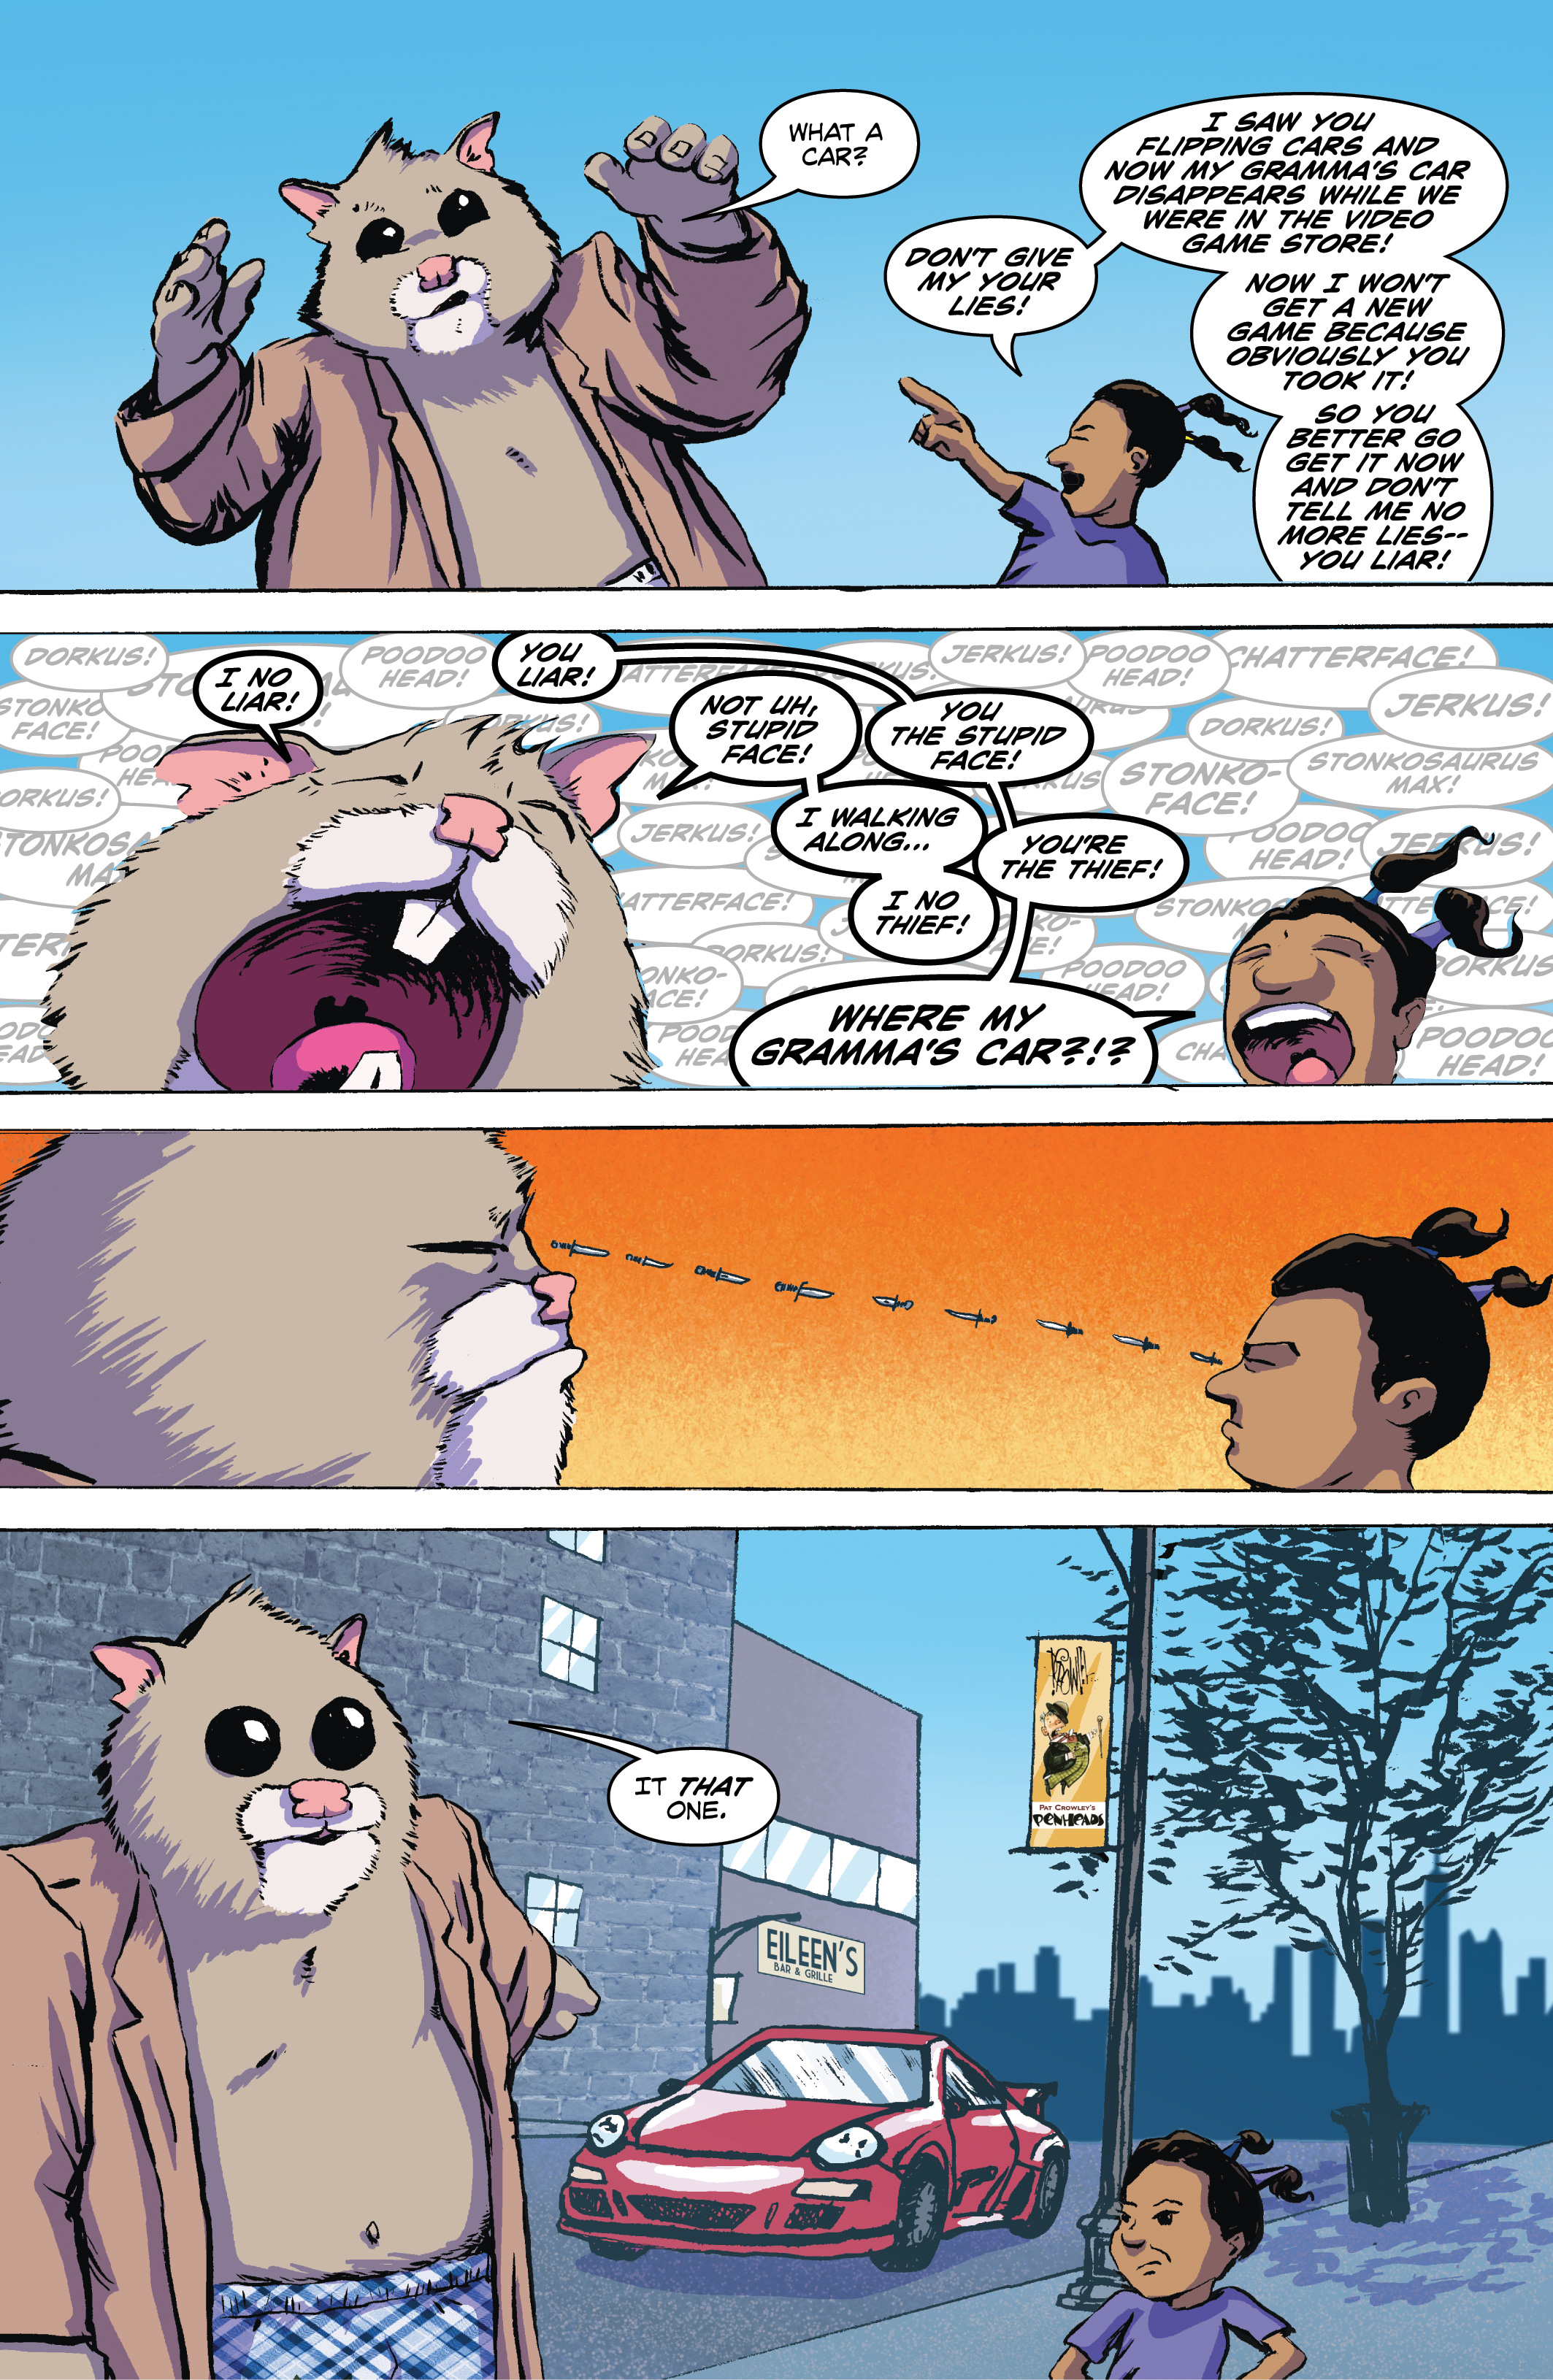 PAGE 5 Panel 1. Roosevelt shrugs as Shayna's point at him intensifies. ROOSEVELT: What a car? SHAYNA: Don't give me your lies! I saw you flipping cars and now my gramma's car disappears while we were in the video game store and now I won't get a new game because obviously you took it so you better go get it now and don't tell me no more lies-- you liar! Panel 2. They face each other and start screaming. ROOSEVELT: I no Liar! SHAYNA: You Liar! ROOSEVELT: Not uh, Stupid face! SHAYNA: You the stupid face! ROOSEVELT: I walking along… SHAYNA: You're the thief! ROOSEVELT: I no thief! Panel 3. They both glare daggers at each other.  Panel 4. Zoom out to Roosevelt pointing to a red Porsche on the street... Shayna glares. ROOSEVELT: It that one.